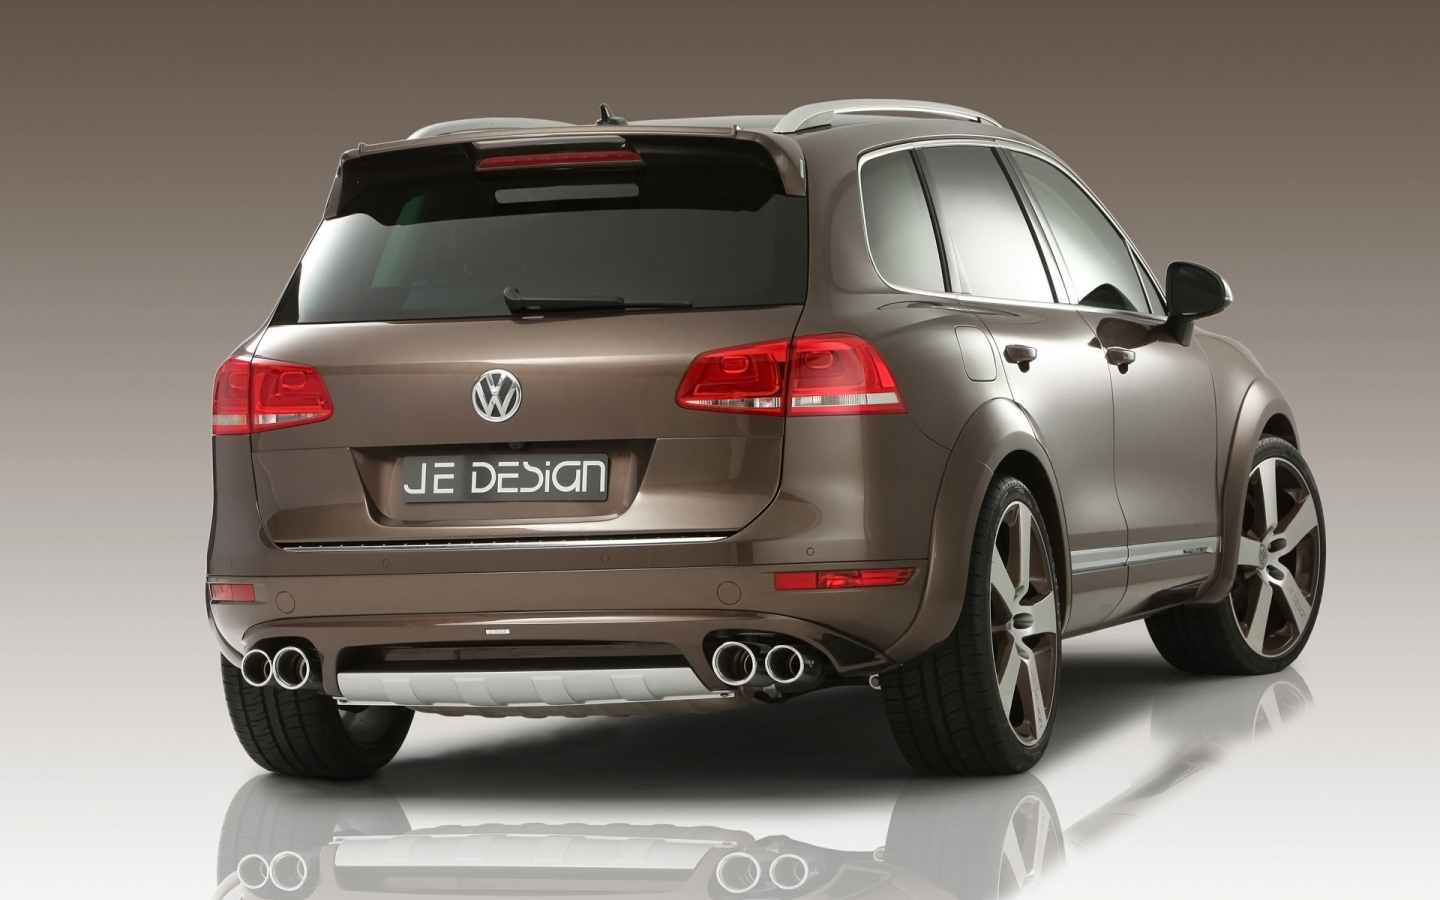 Volkswagen Touareg Rear Angle for 1440 x 900 widescreen resolution